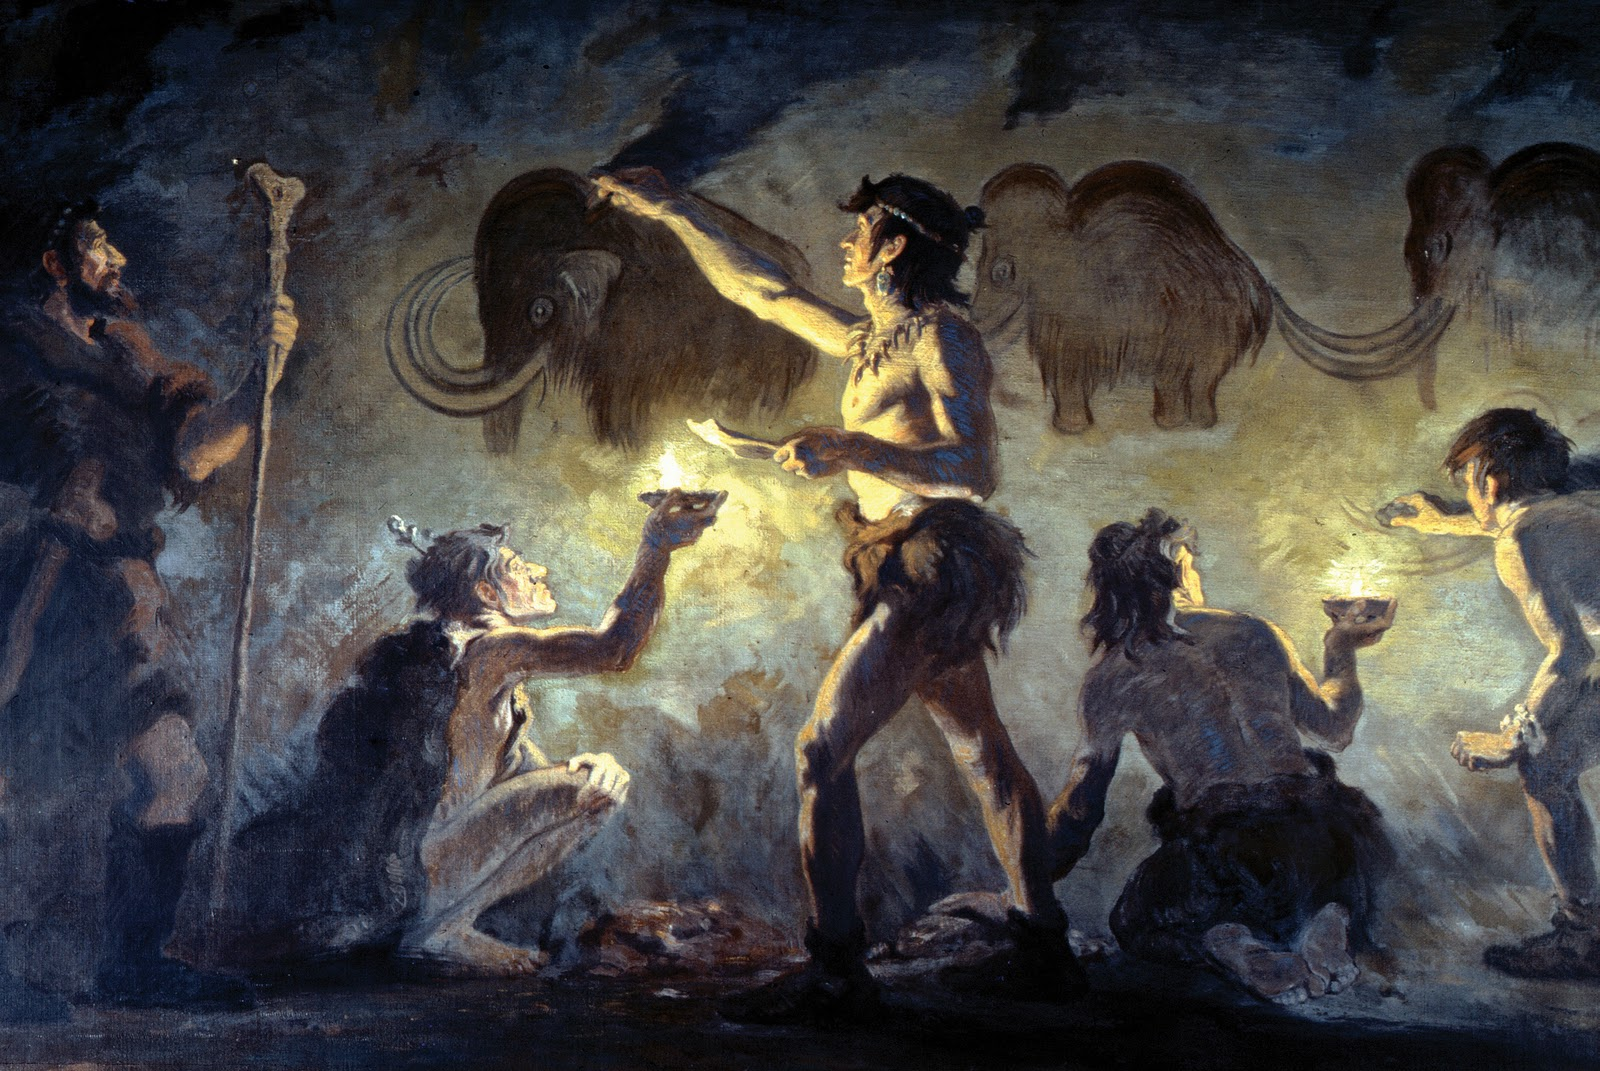 Stone Age artists at work by Charles Knight